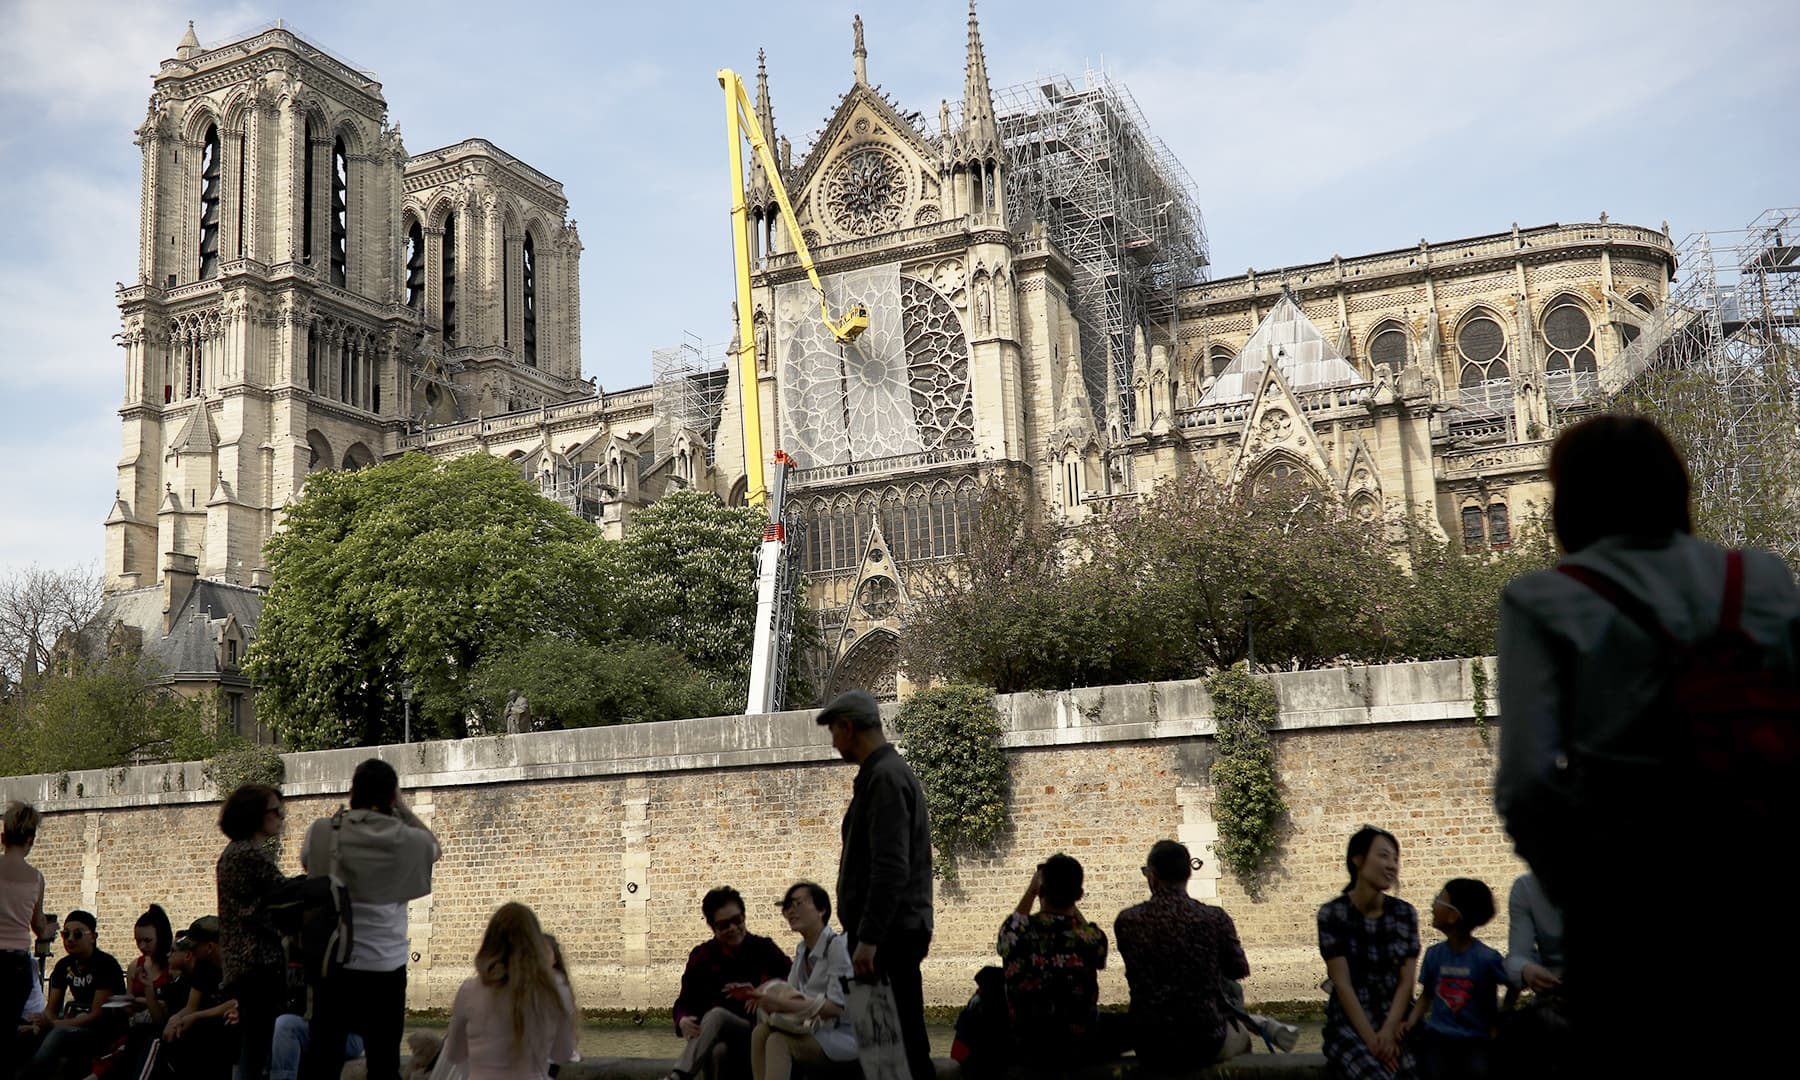 Workers, top, fix a net to cover one of the iconic stained glass windows of the Notre Dame Cathedral in Paris. — AP